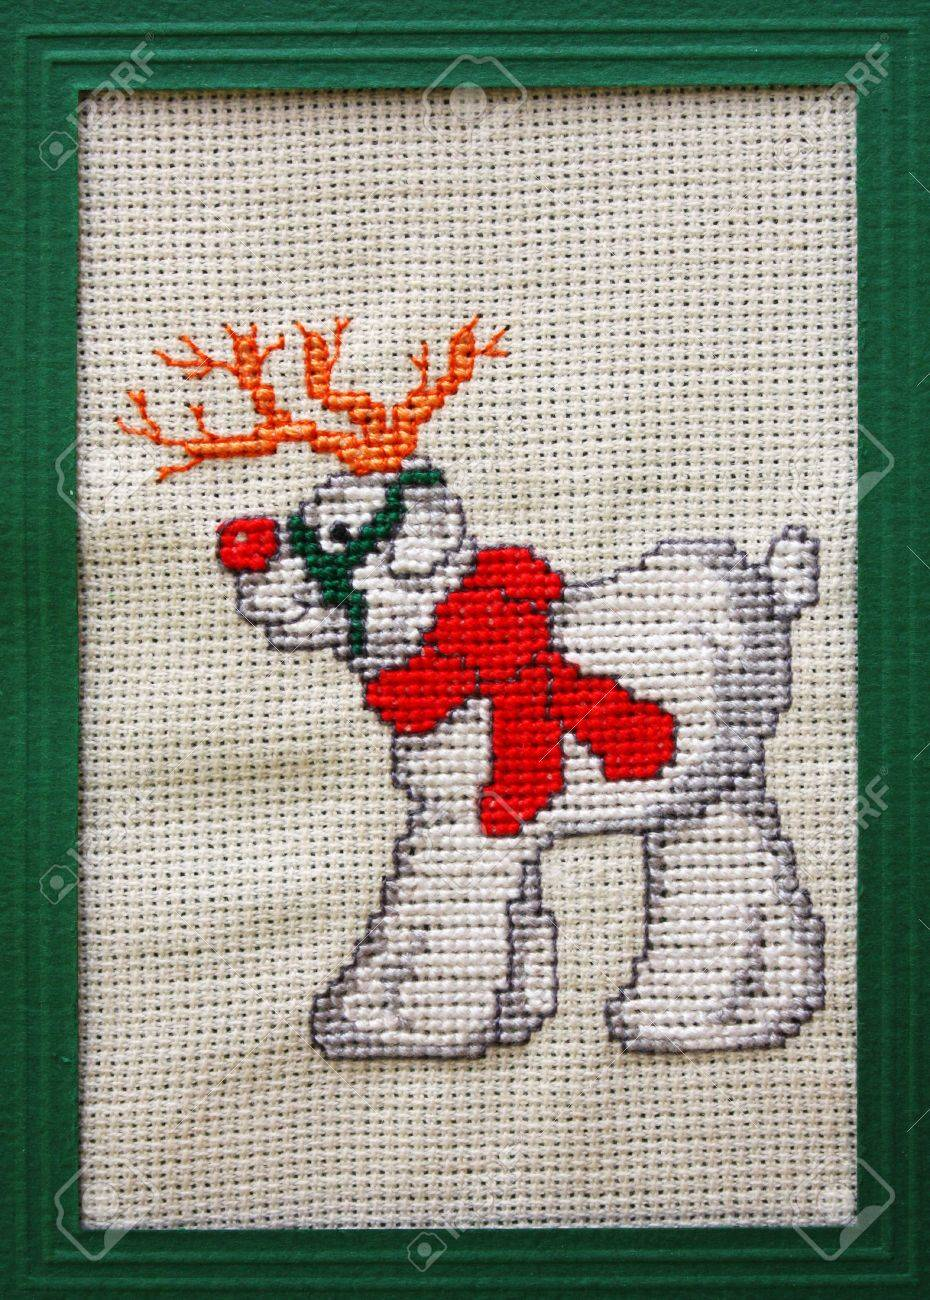 Cross Stitch Christmas Card Showing A Red Nose Reindeer Stock Photo